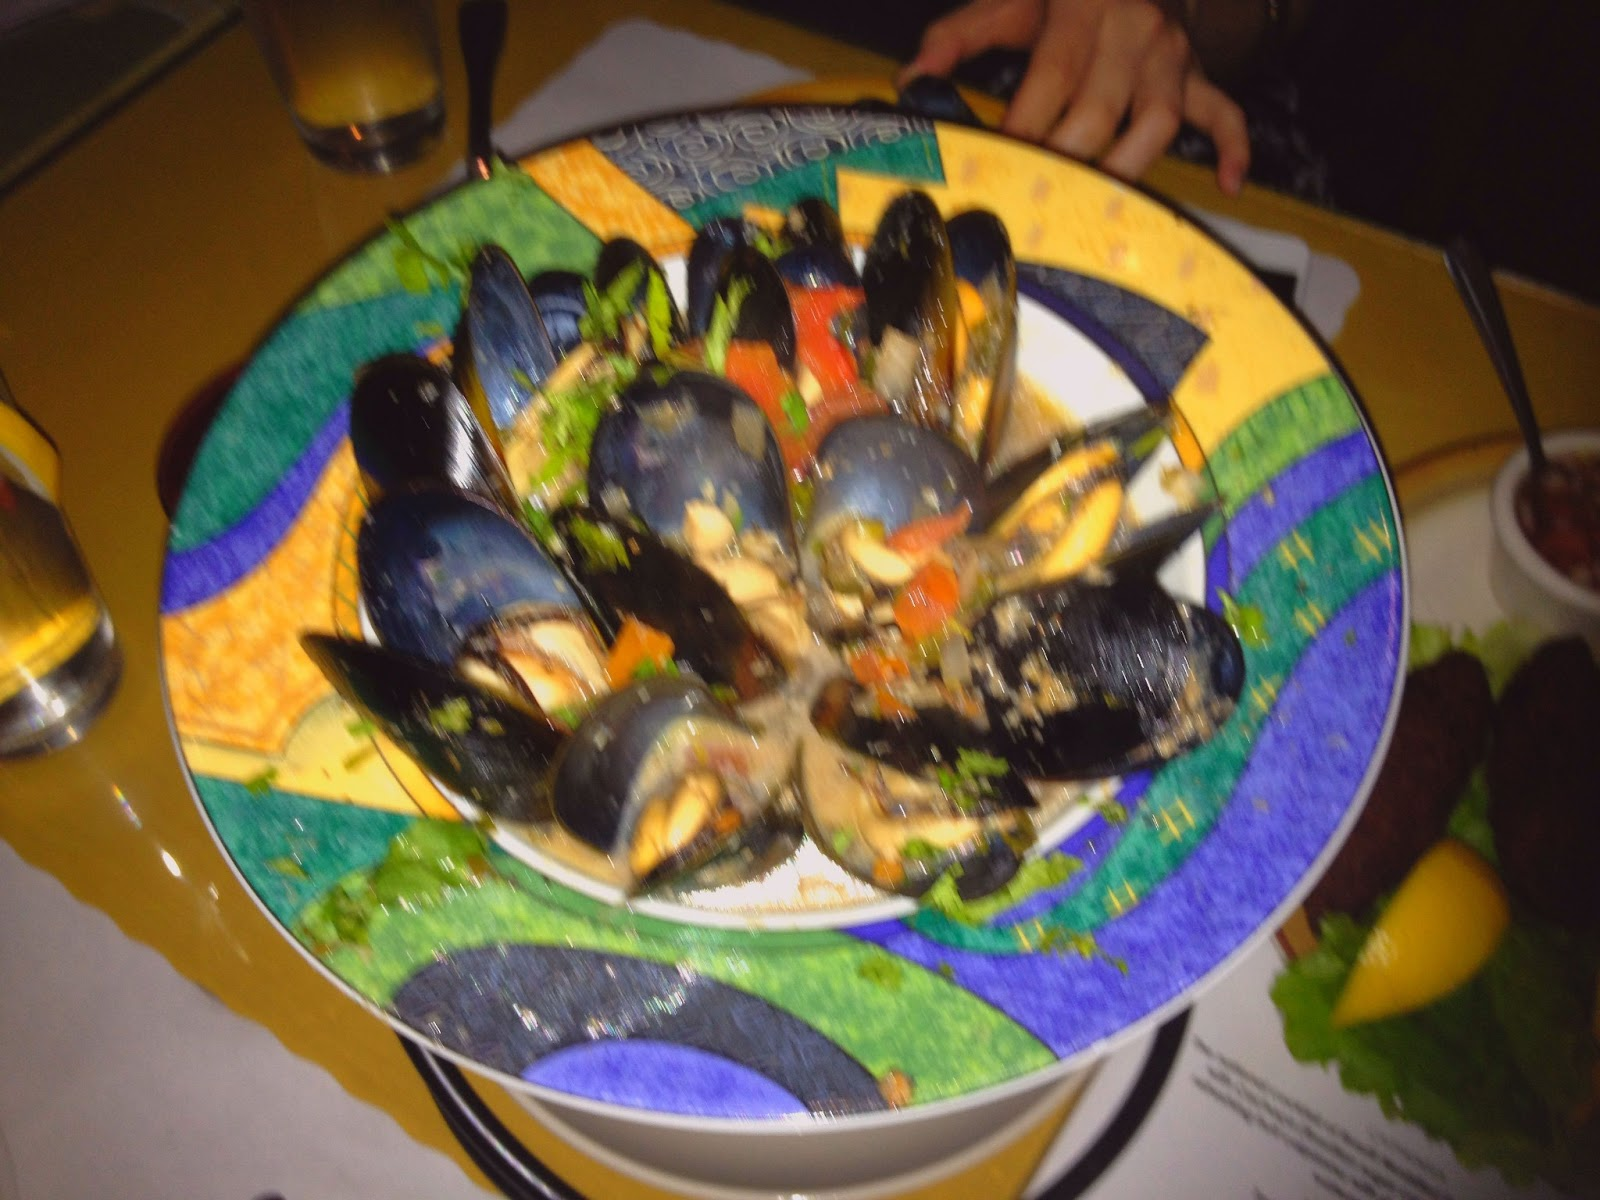 Mussels sauteed in red wine, olive oil, lemon and garlic